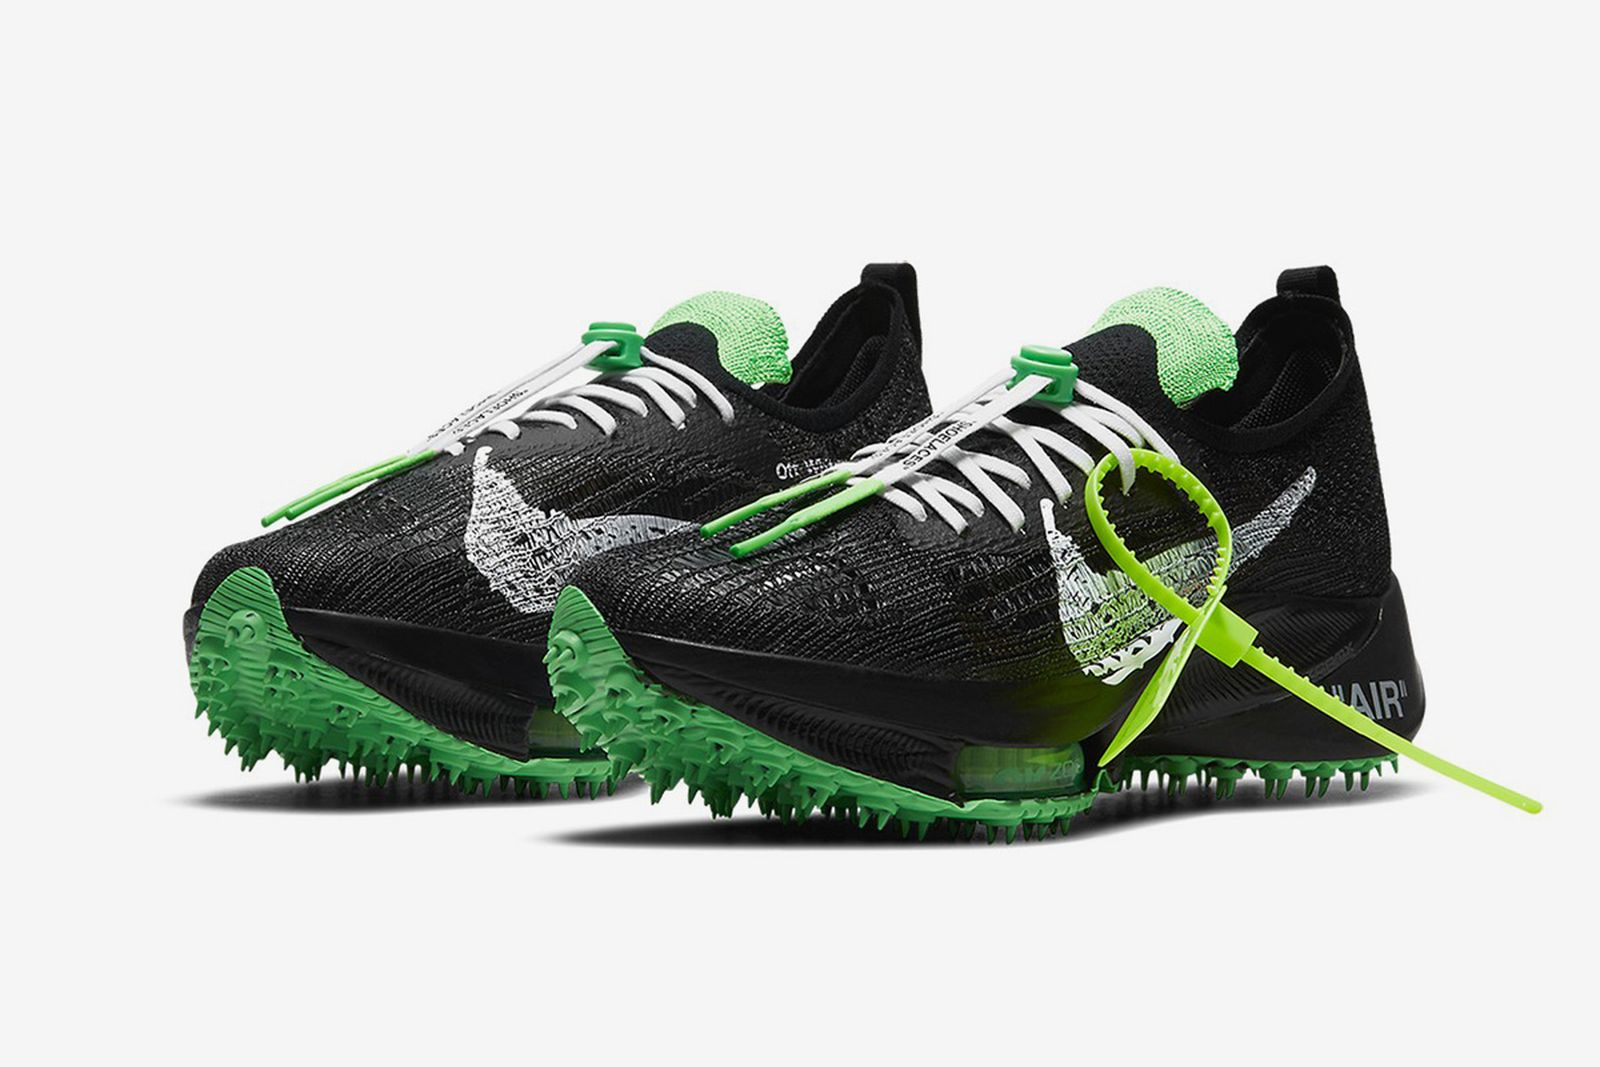 off-white-nike-air-zoom-tempo-next-release-date-price-03